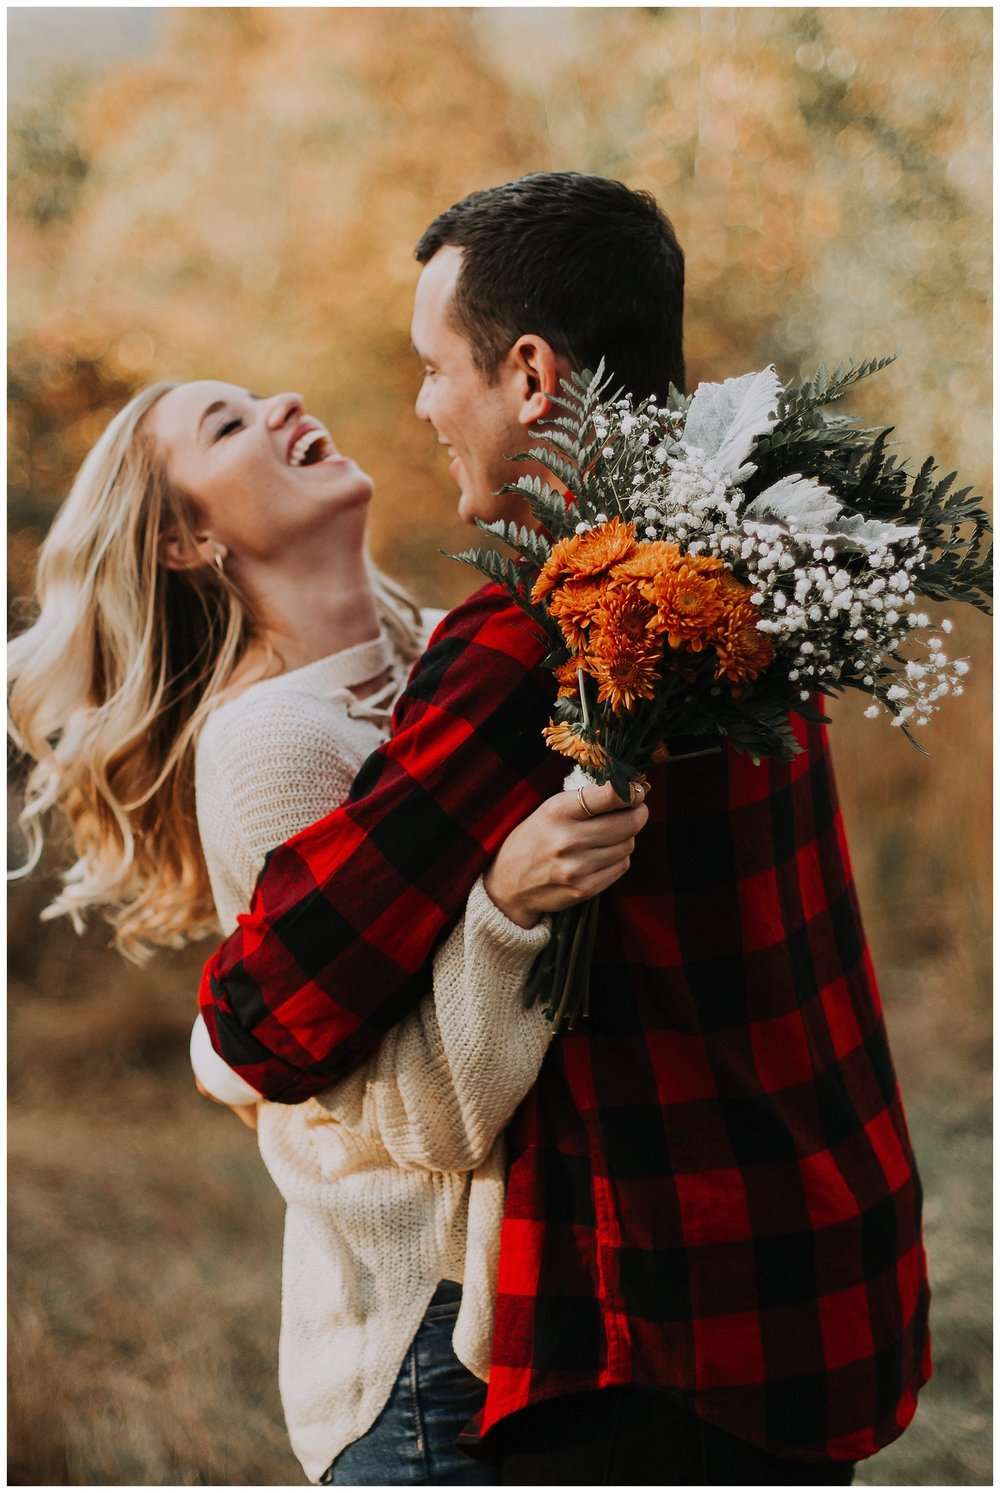 Lauren and Laine Engagement - Blog Feature 9.jpg